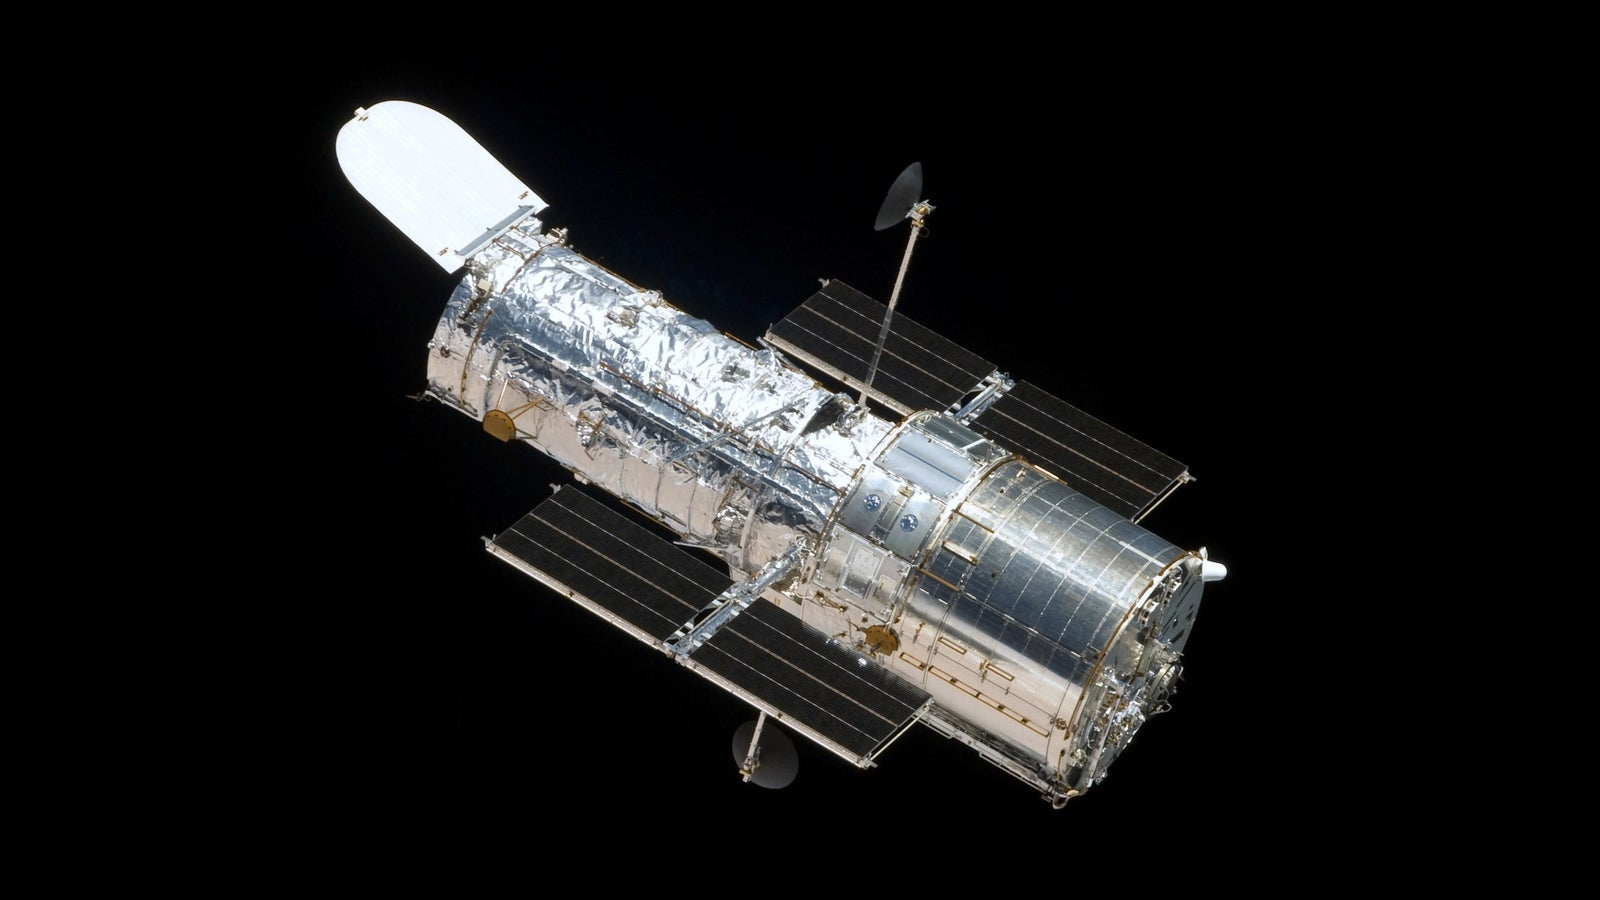 hubble-space-telescope nasa space-infrastructure